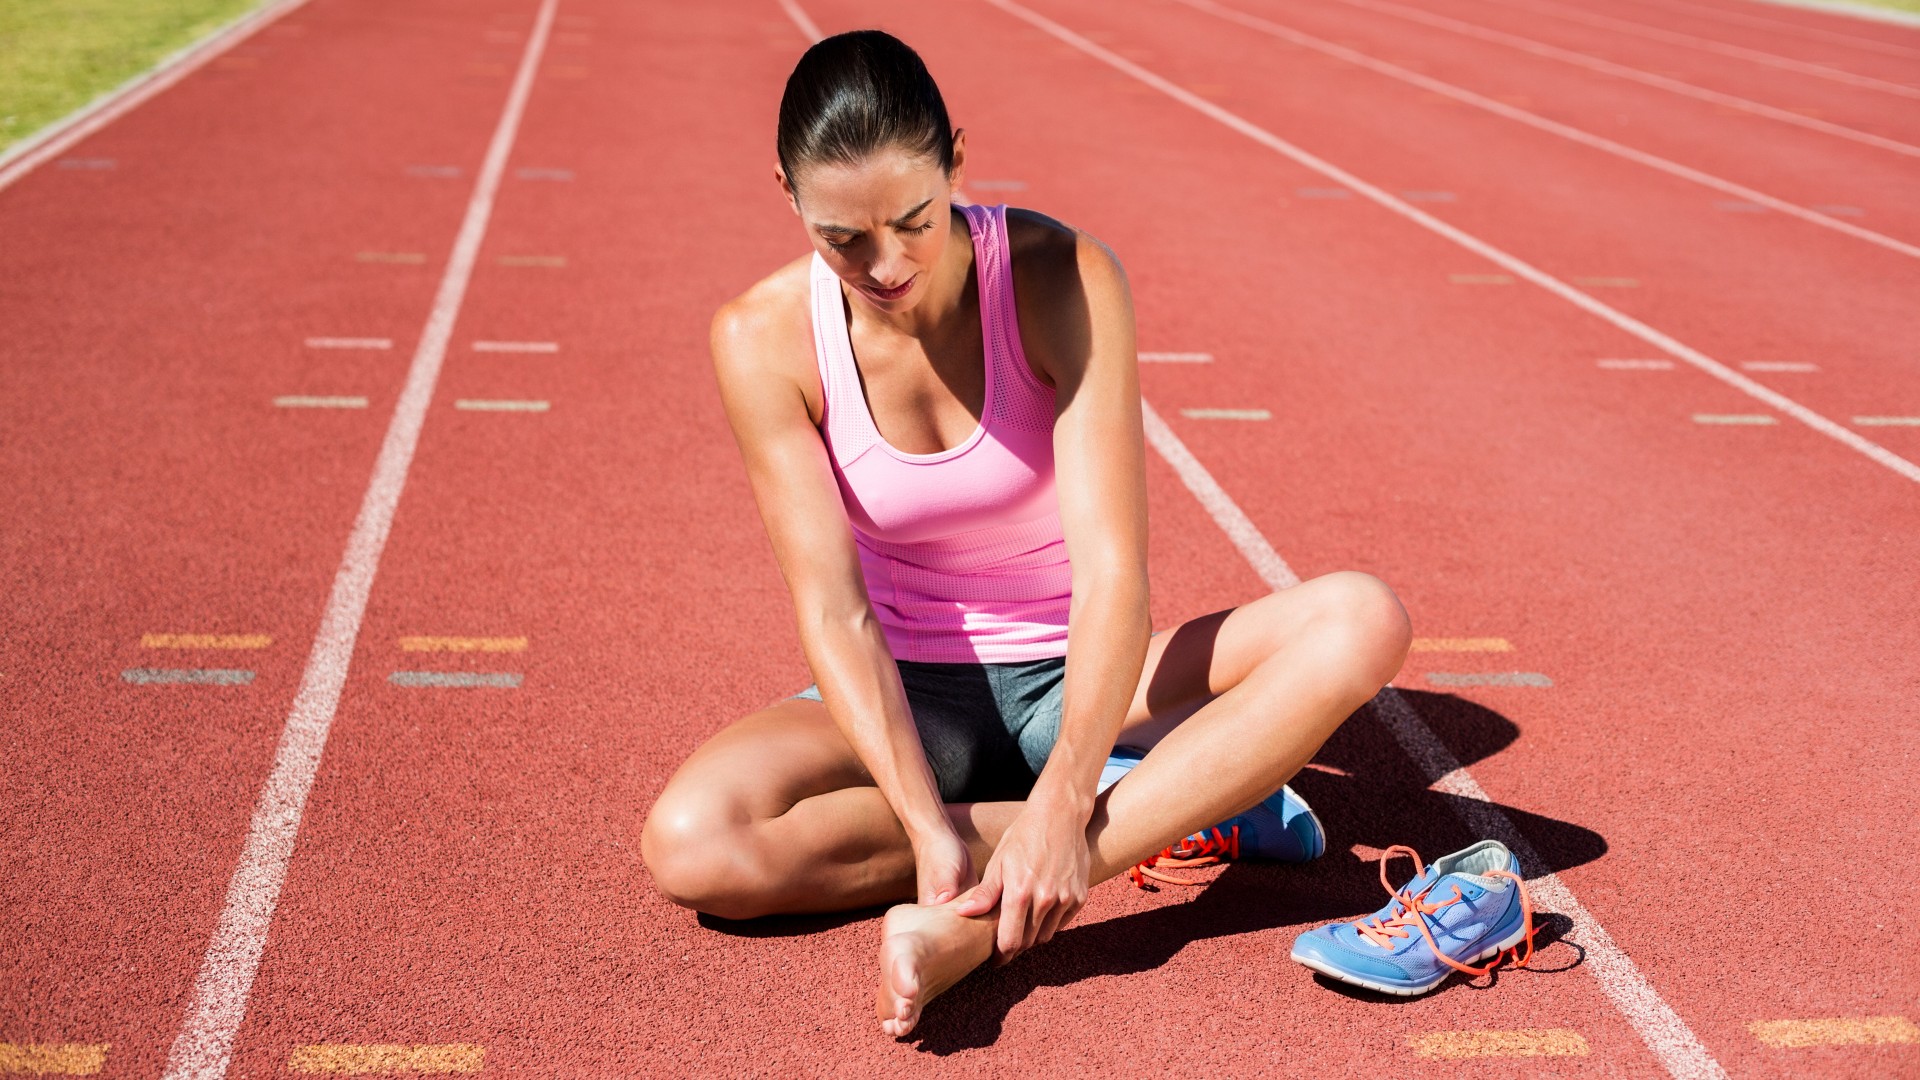 Misconceptions when injured